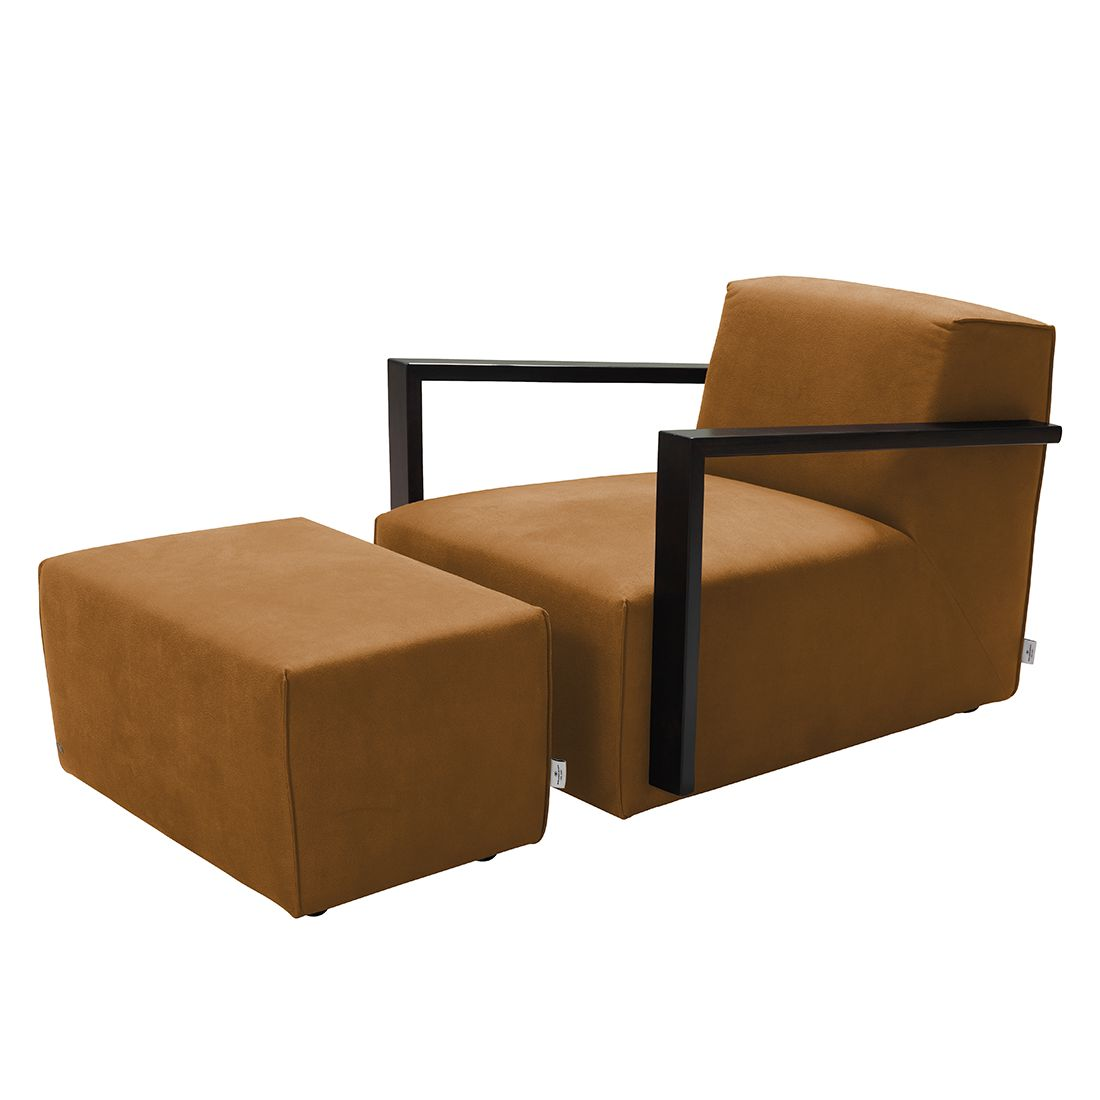 goedkoop Fauteuil Lazy antiekleren look Hocker Lichtbruin Tom Tailor